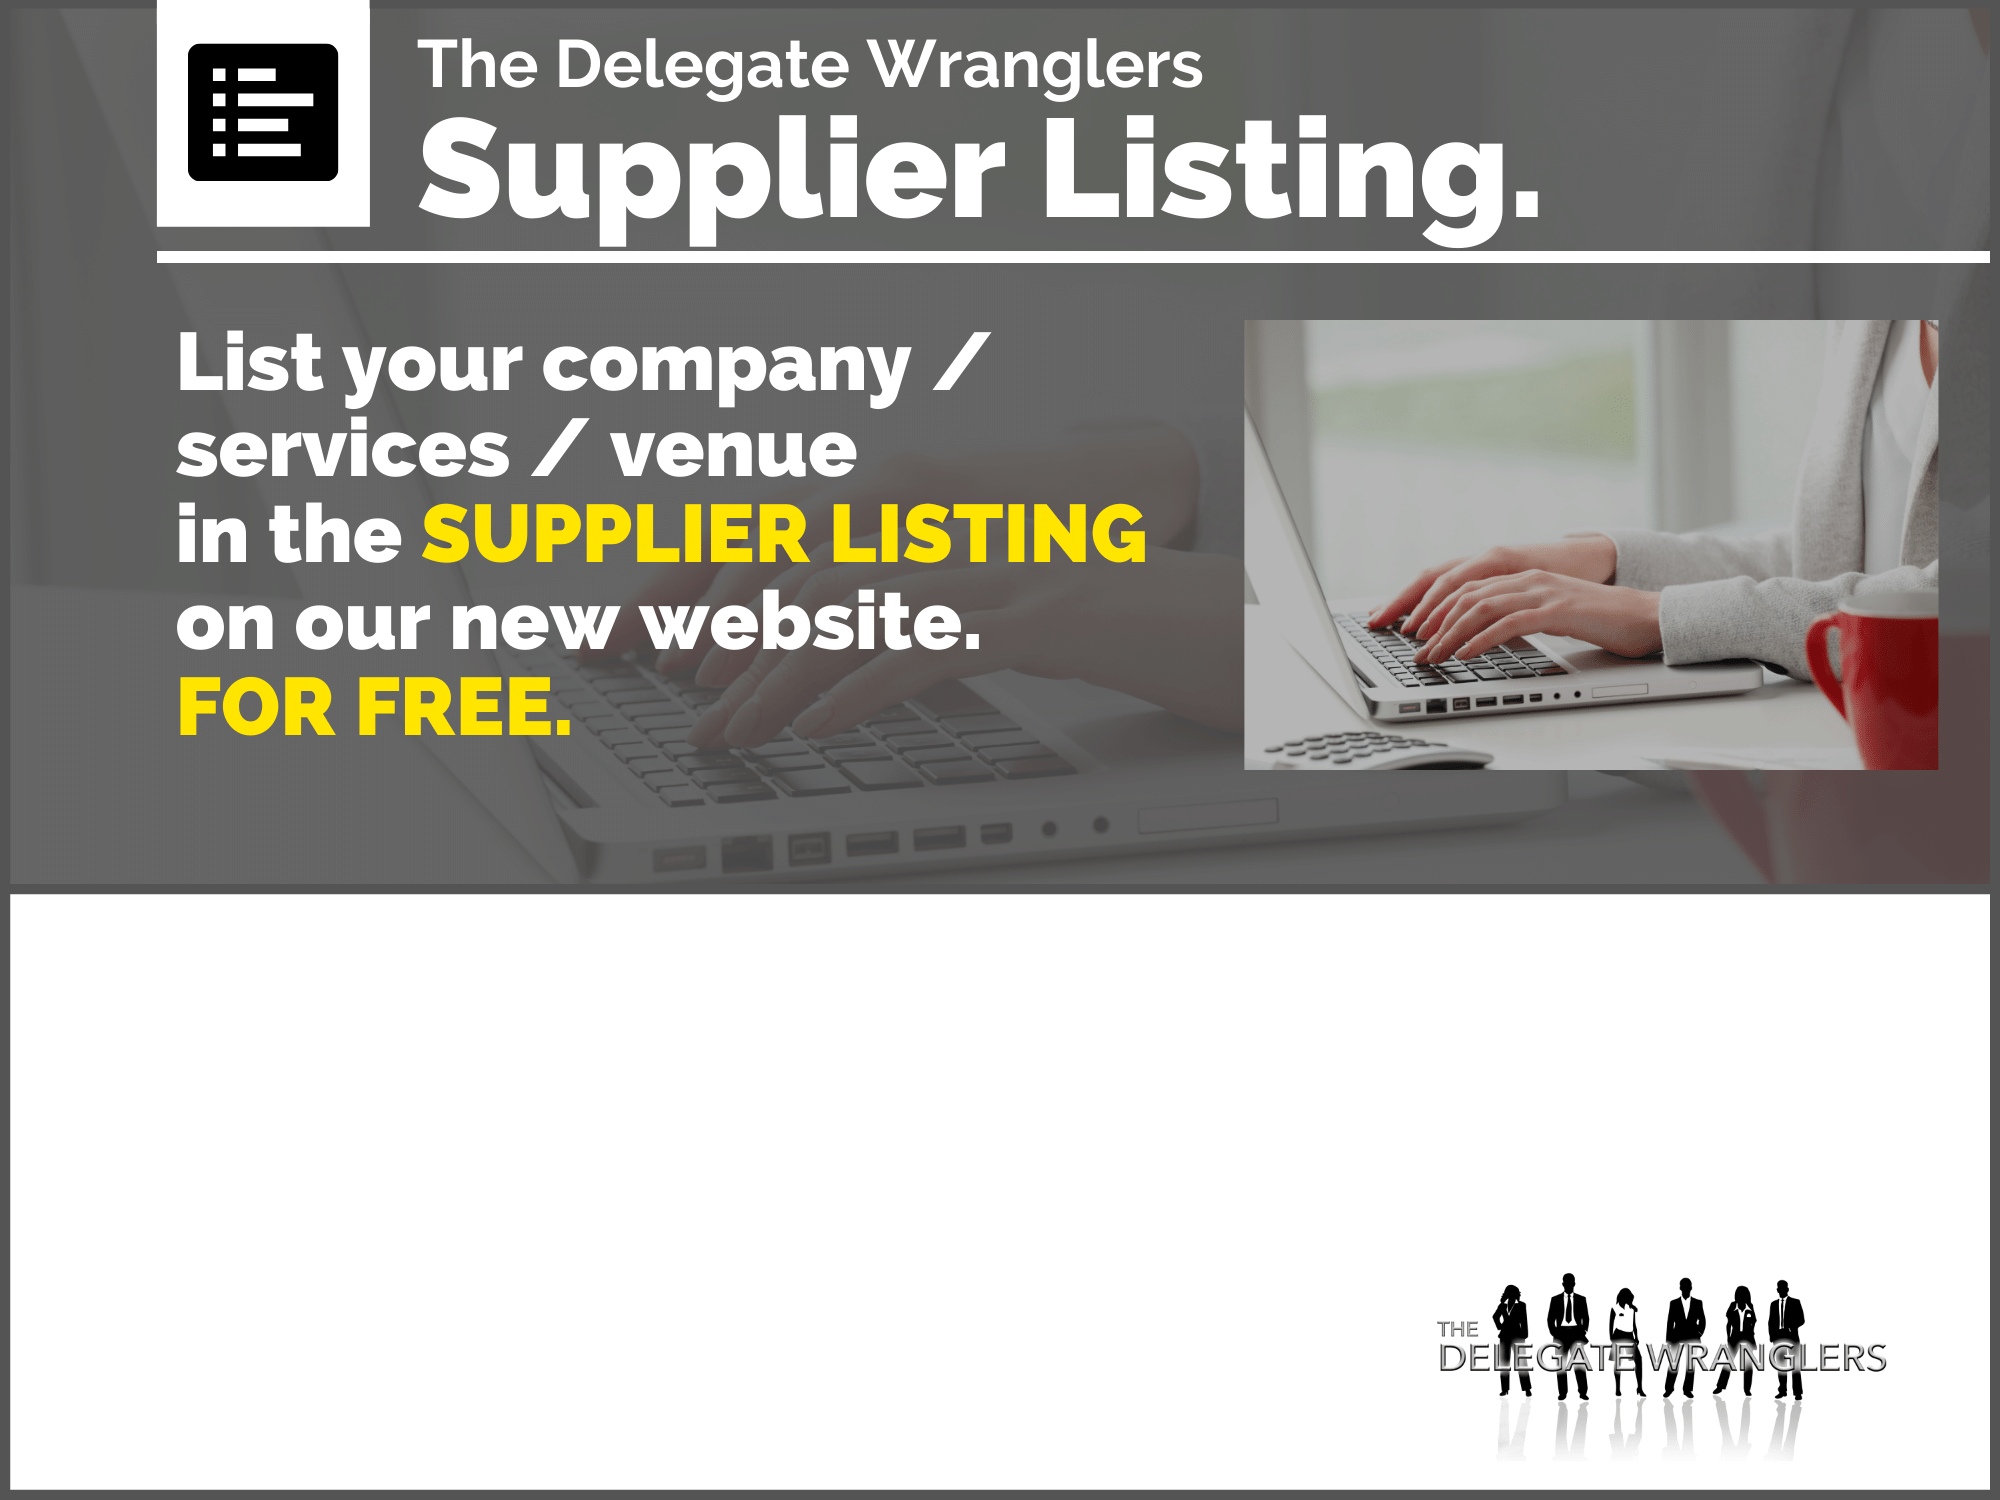 FREE supplier listings launched on new DW website